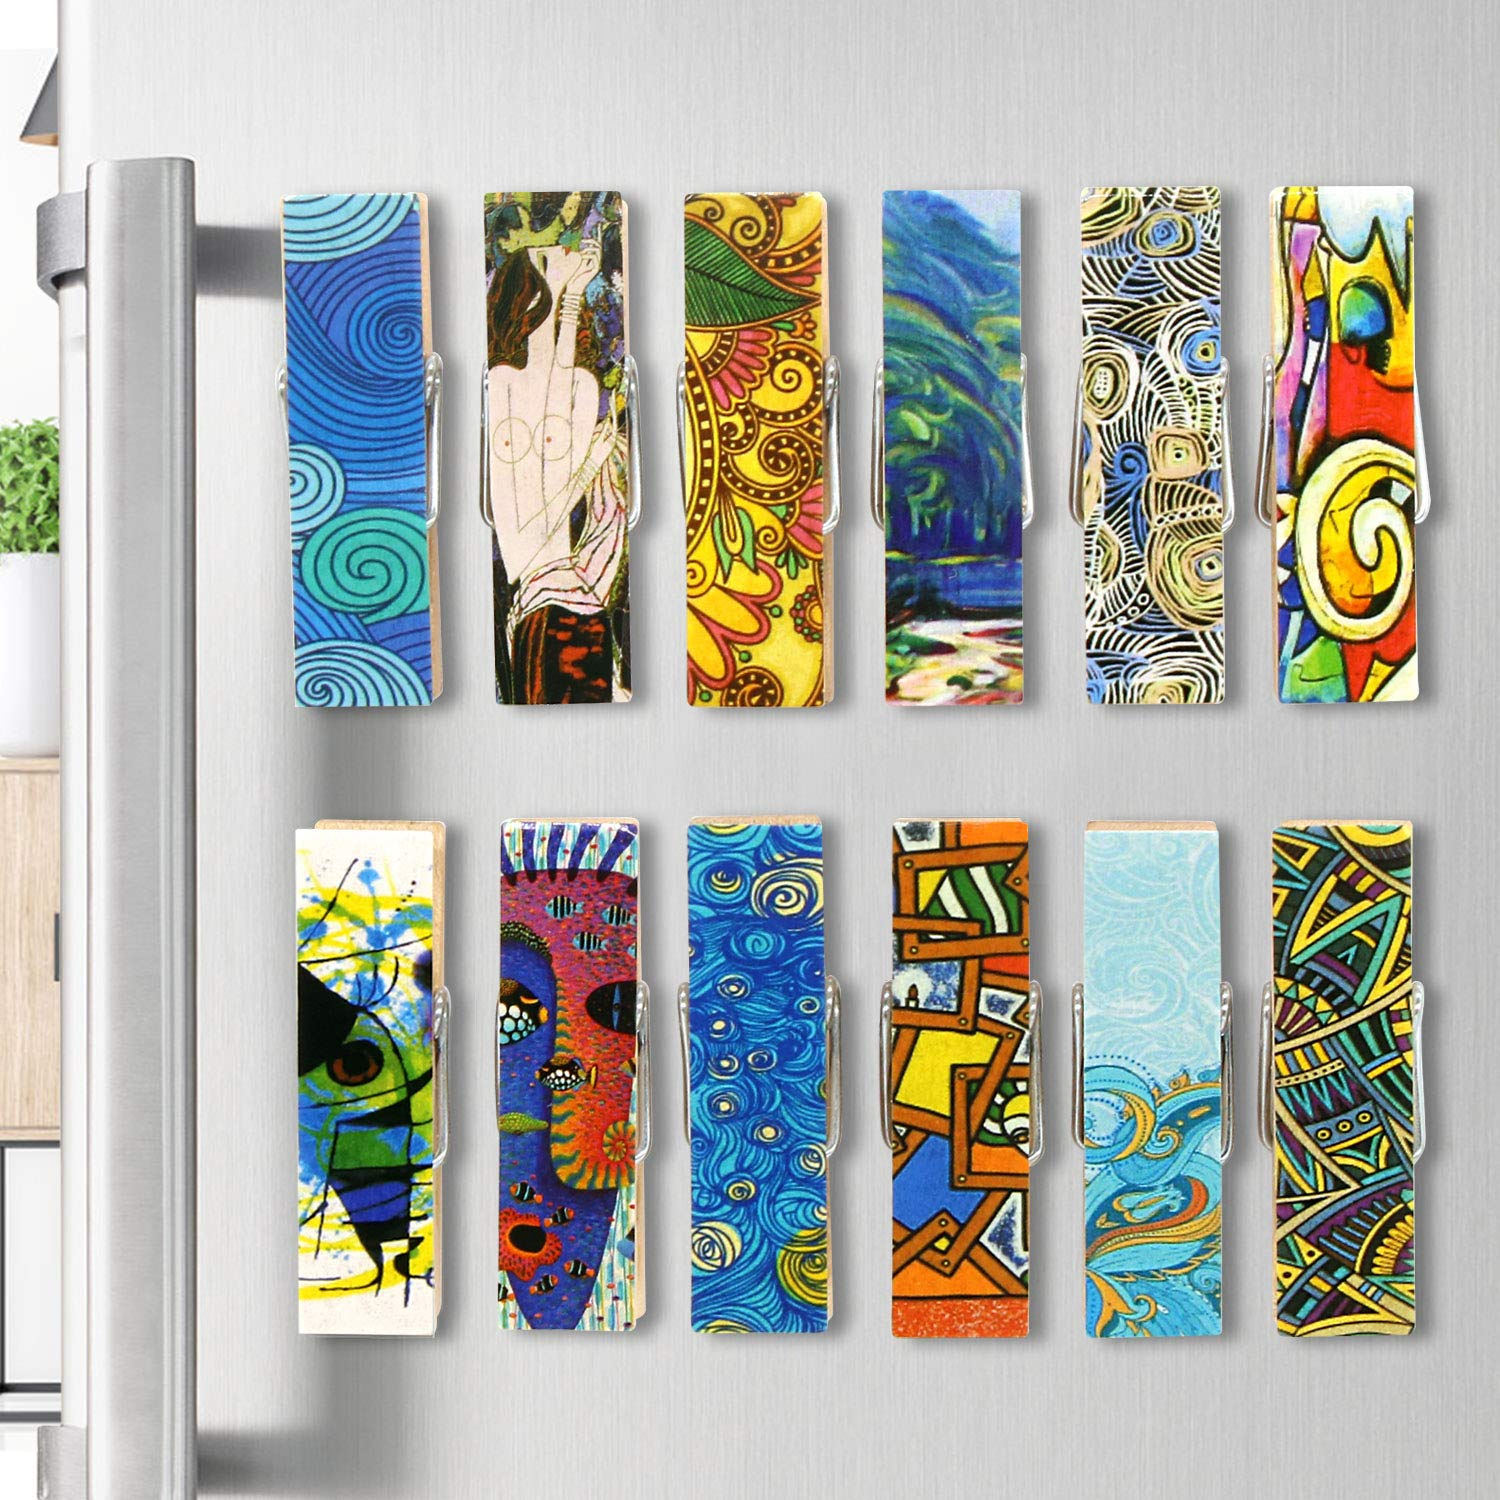 Cosylove 12pcs Magnetic Artistic Clips Decorative Refrigerator Magnet Clips Made of Wood with Beautiful Patterns–Super Fridge Magnets for House Office Use - Display Photos,Memos, Lists, Calendars